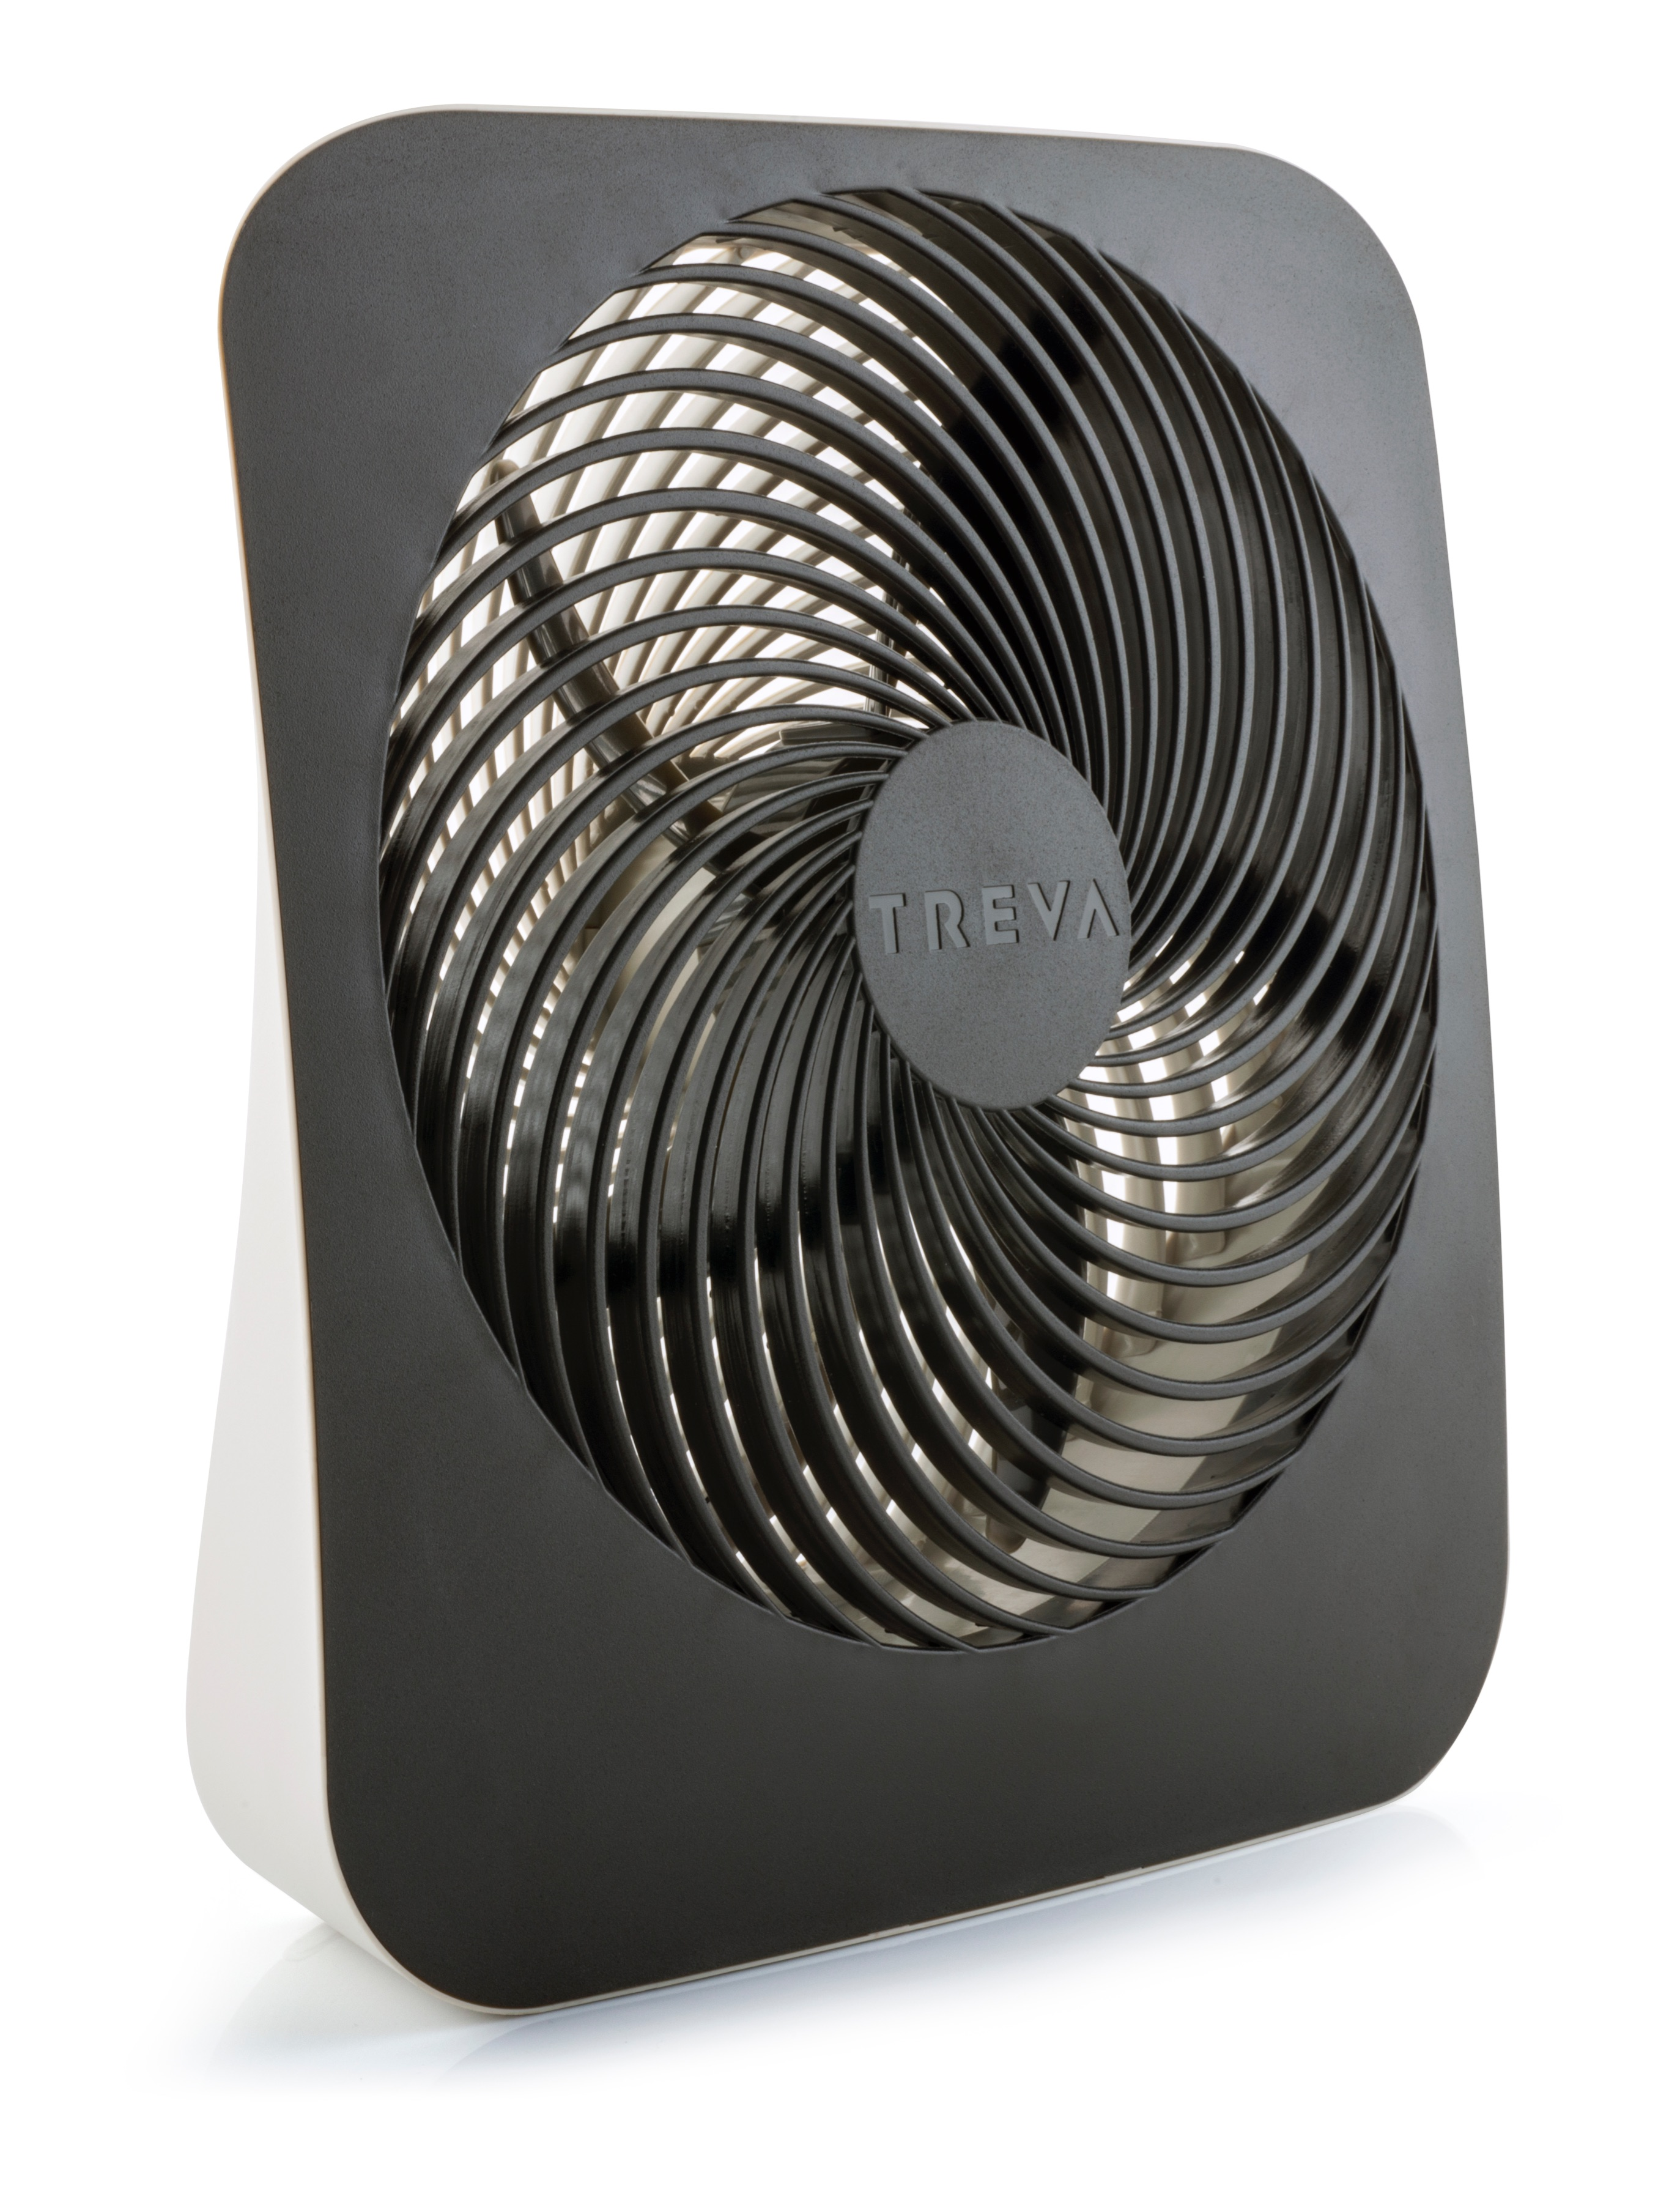 Exhaust Fan Through The Wall 2-Speed W// Airflow Adapter Room To Room Durable NEW